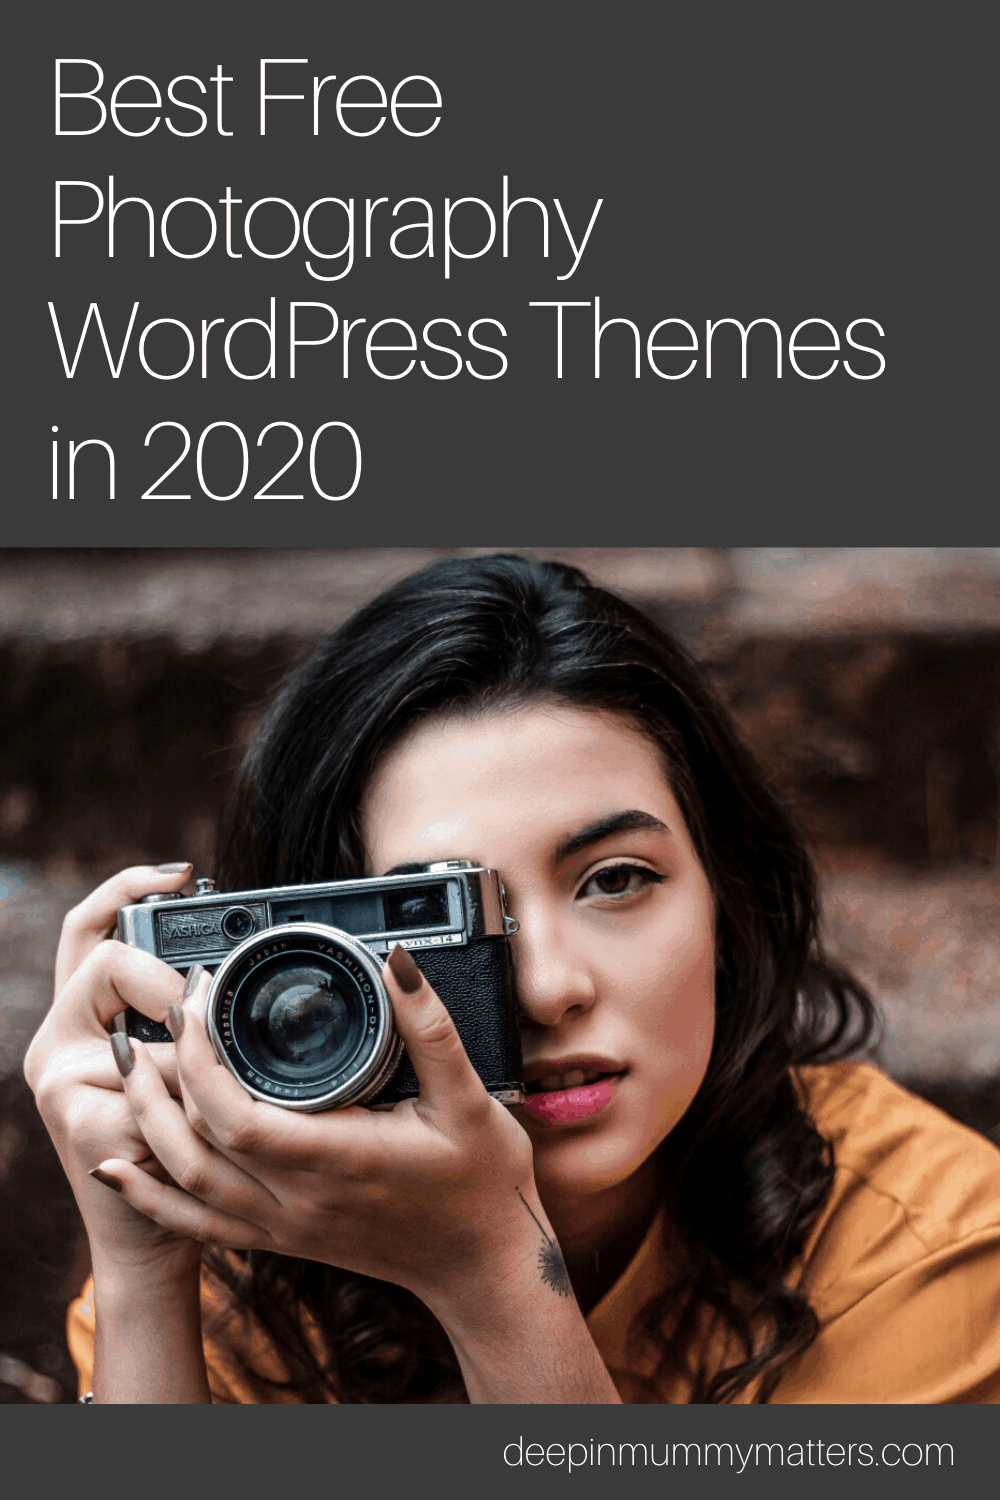 Best Free Photography WordPress Themes in 2020